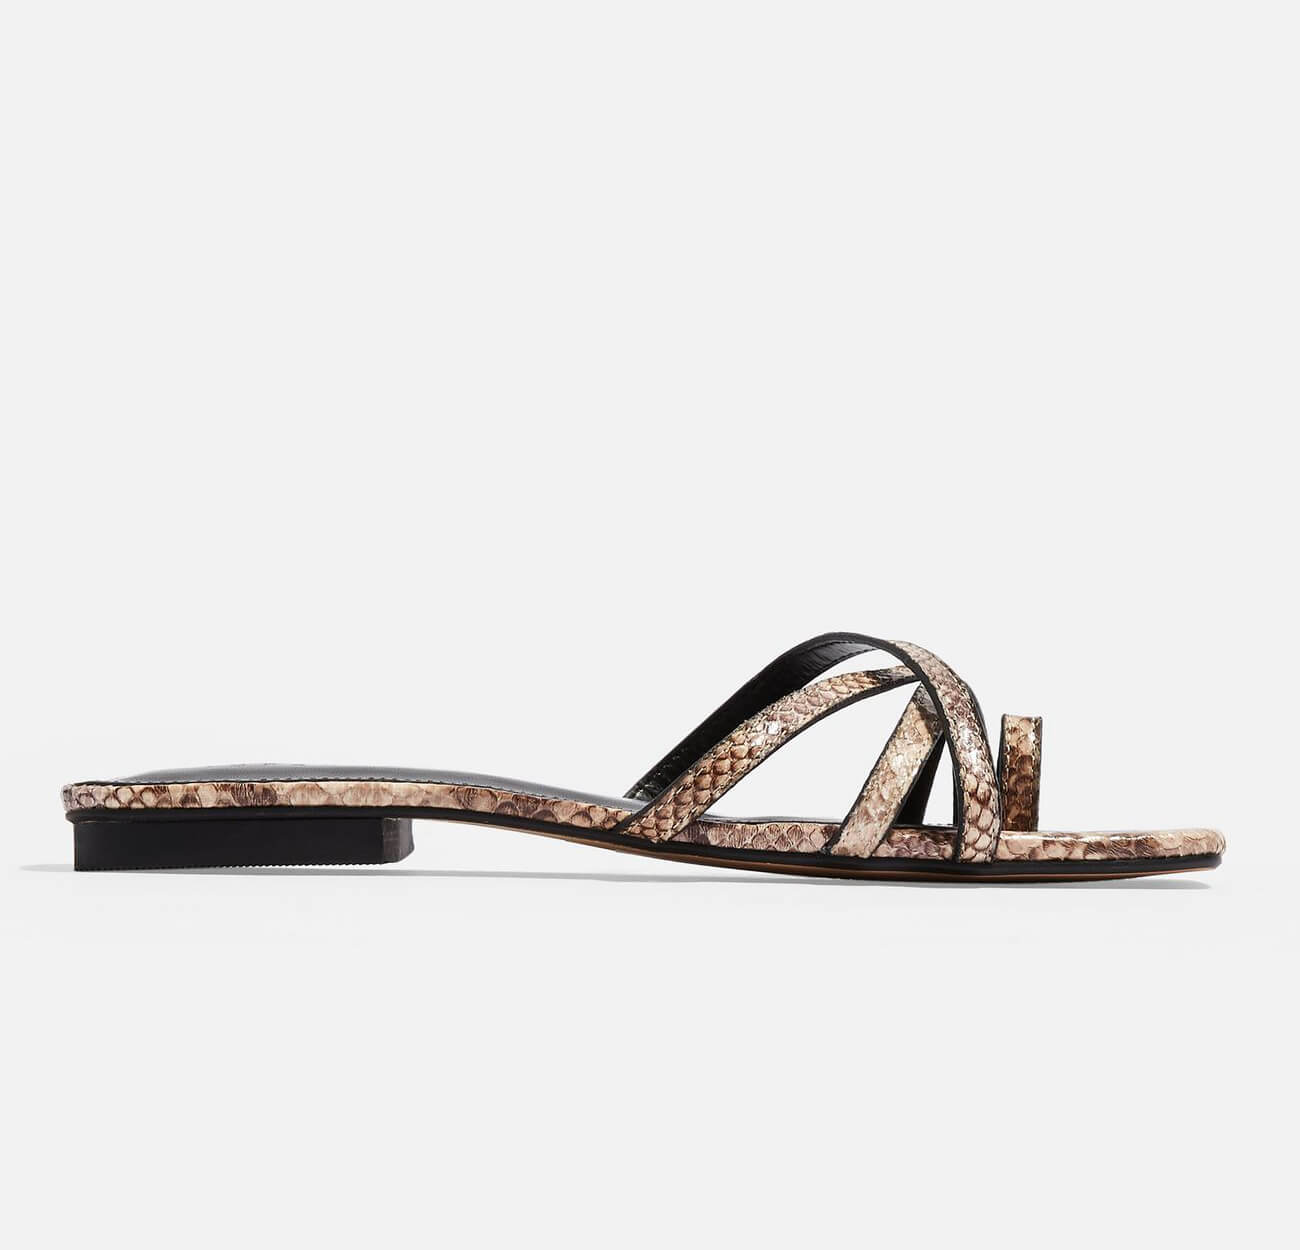 Sandalias planas for this summer